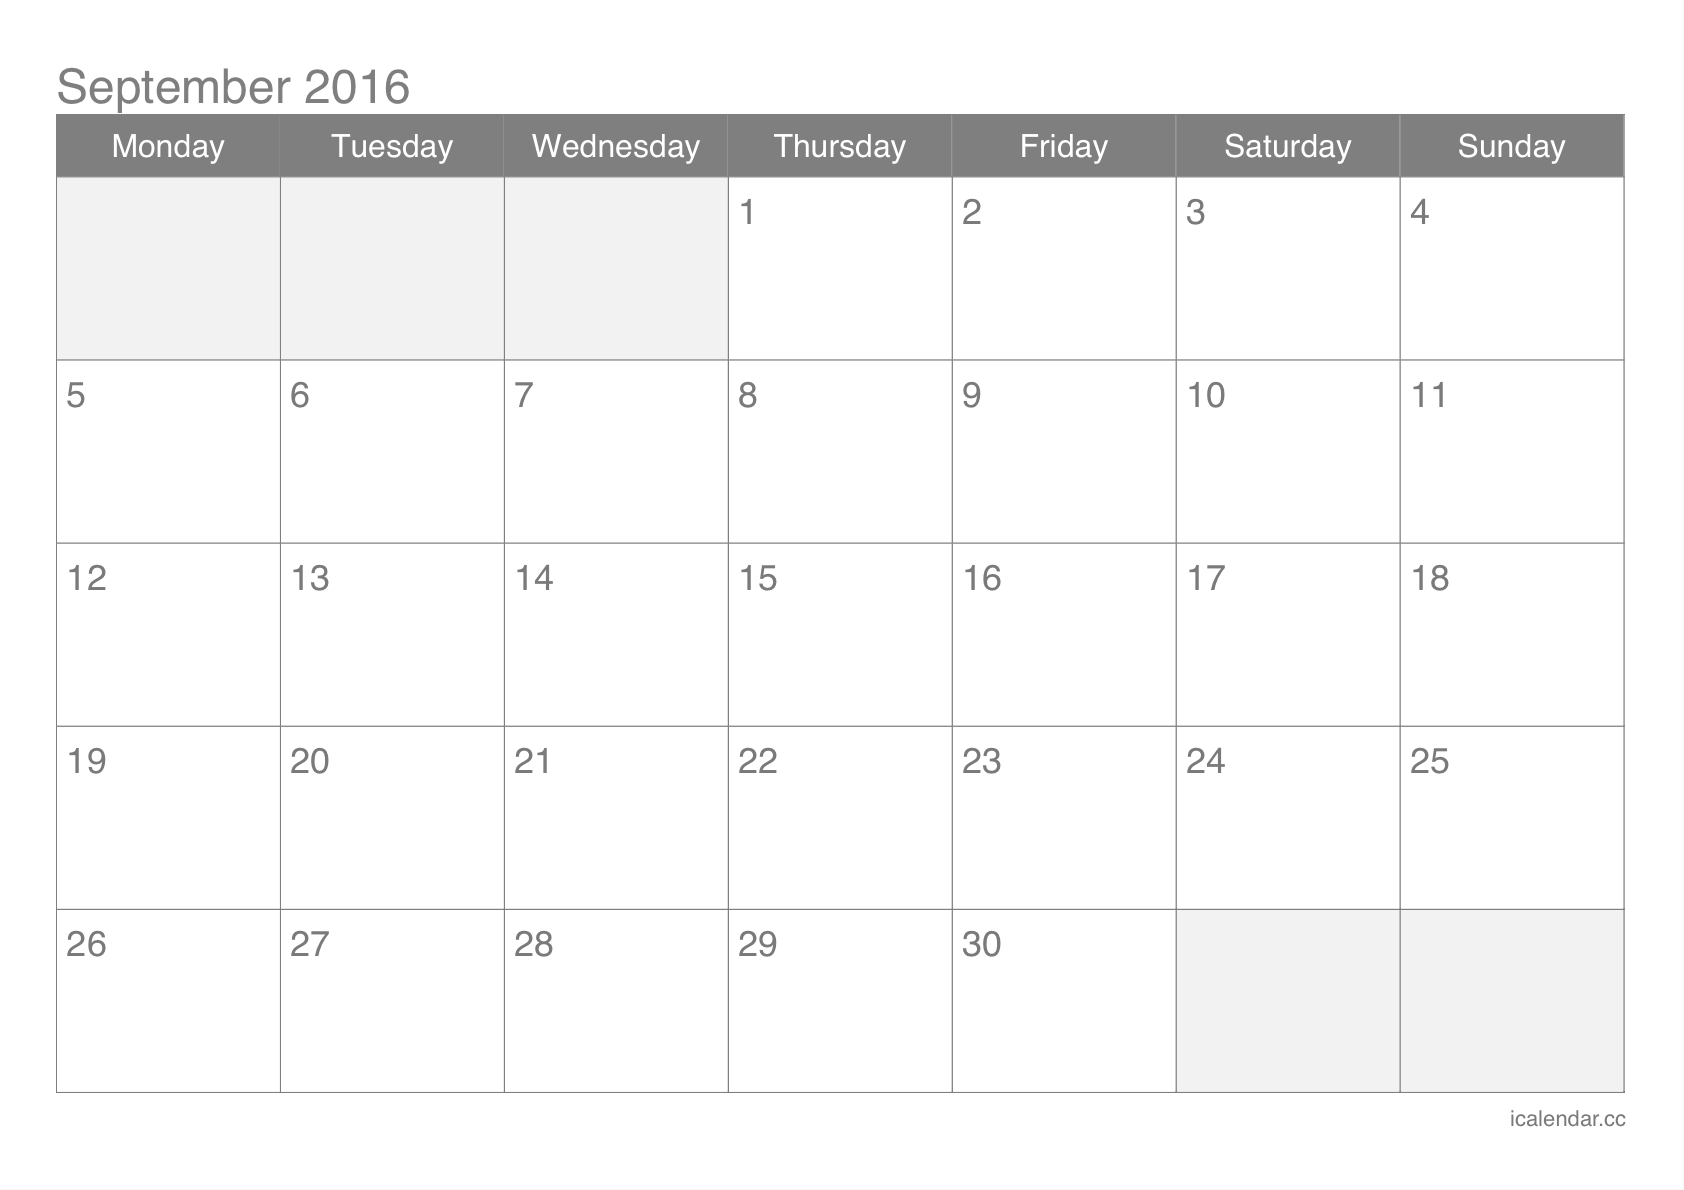 September 2016 Printable Calendar - icalendars.net